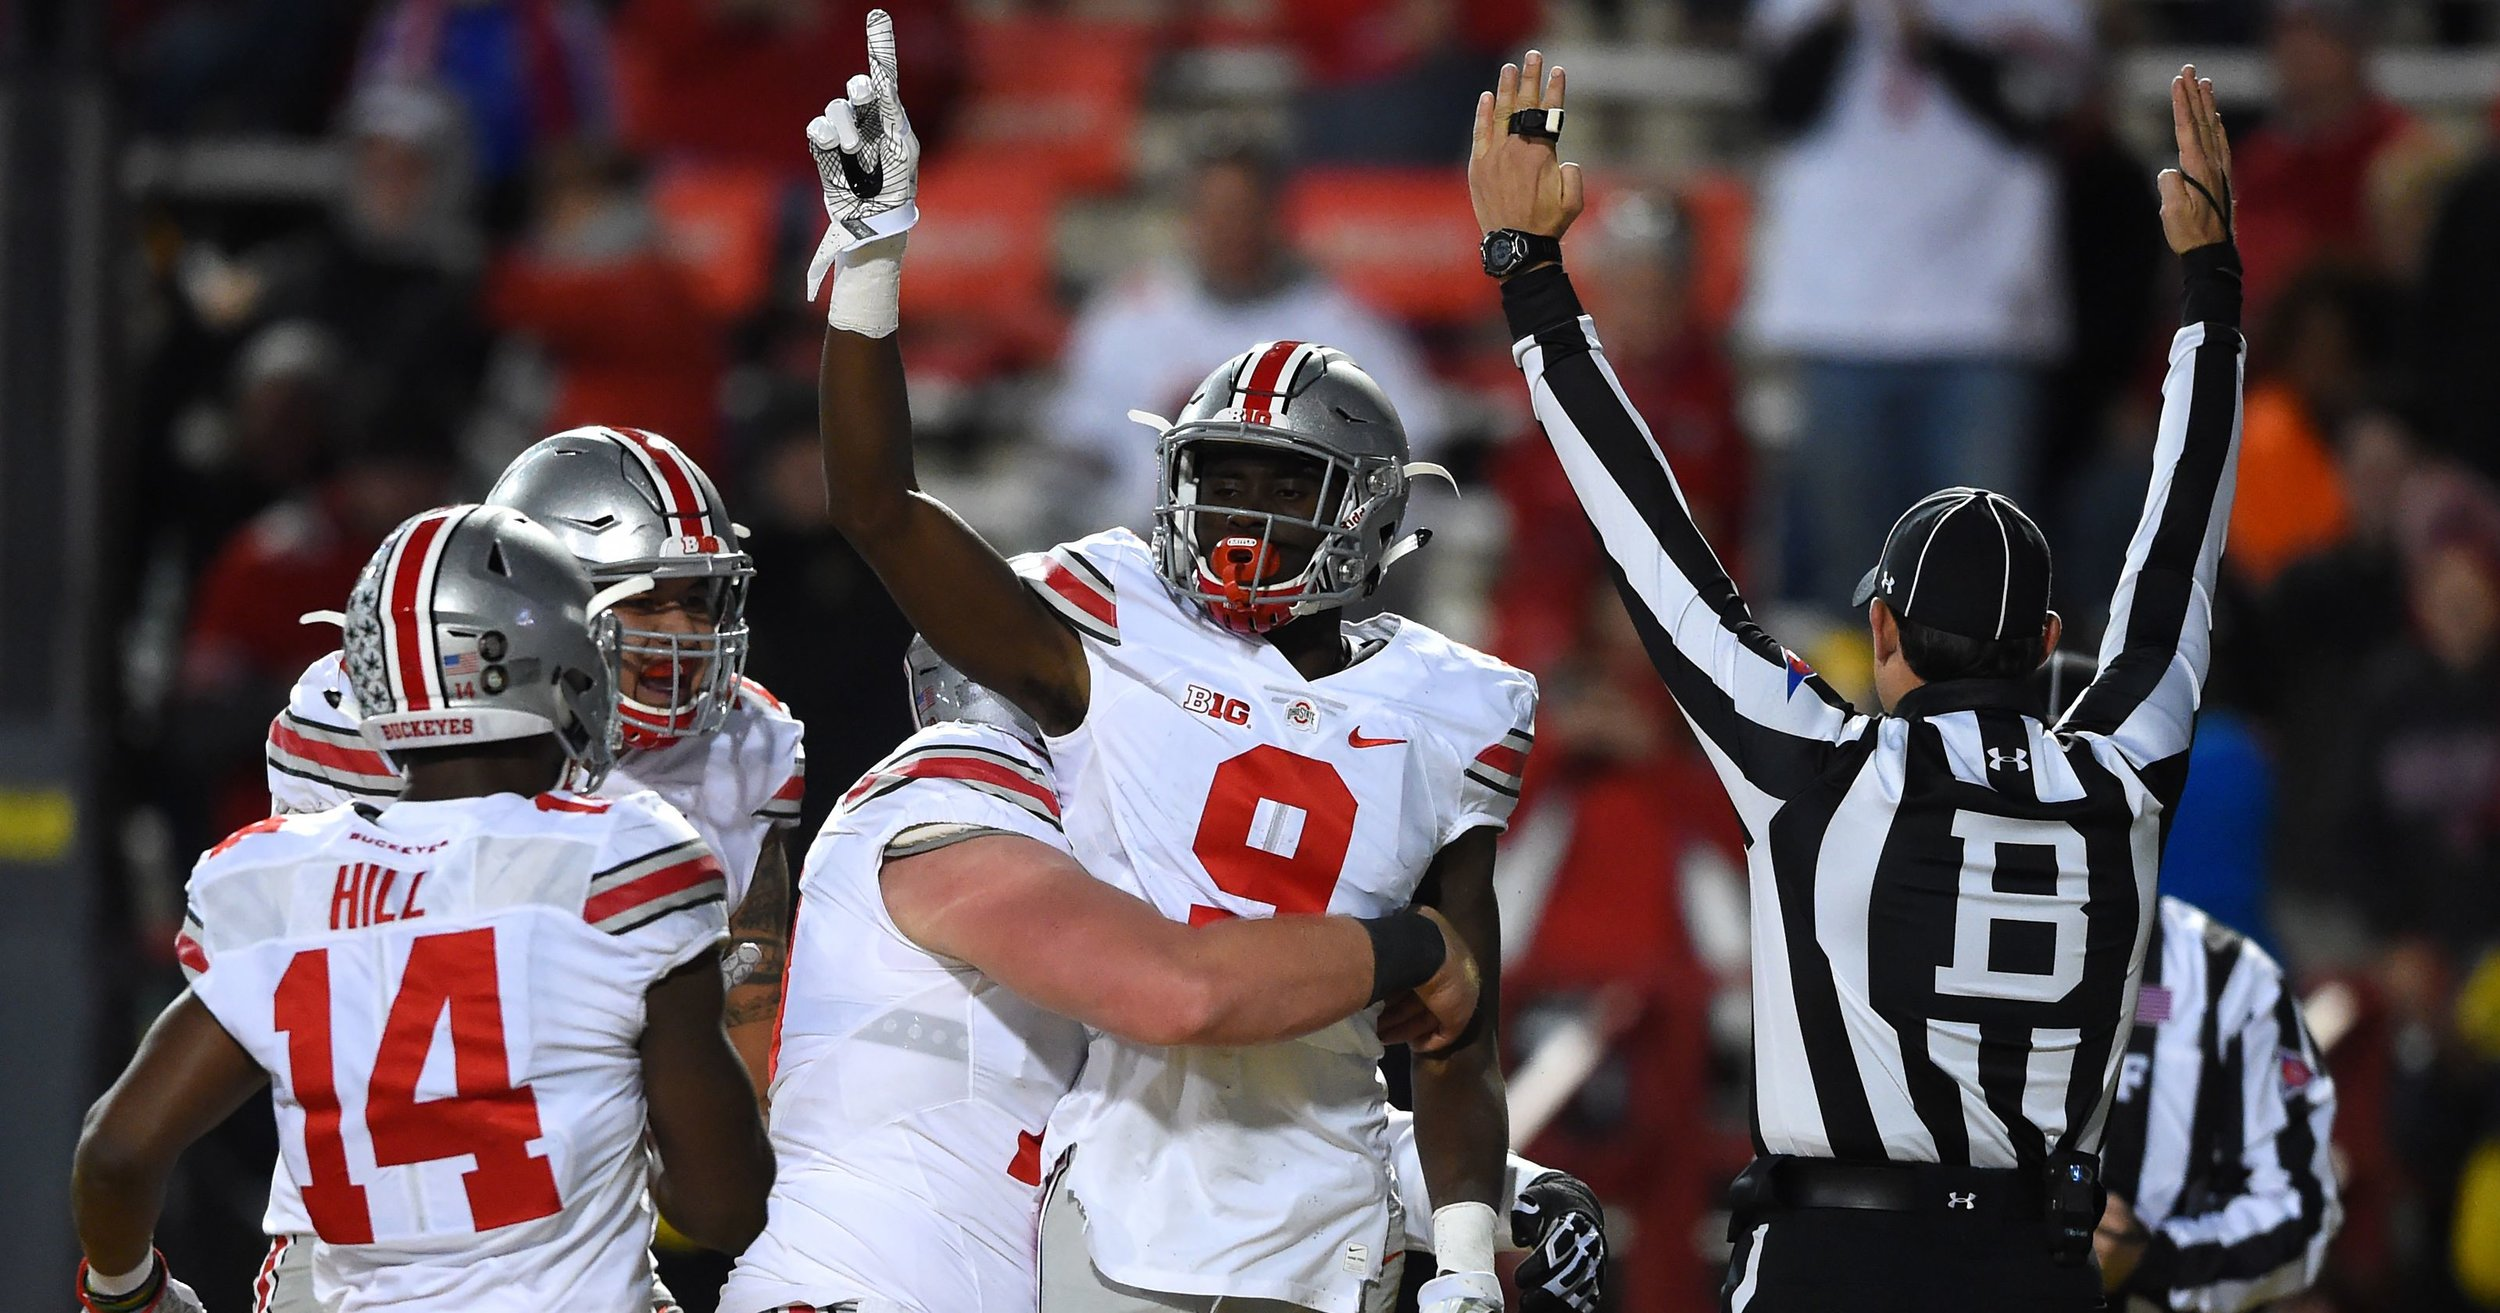 There was never an acceptable scenario for success that didn't include beating this team......unless you were okay with not winning the Big Ten a thirteenth straight year and going 2-14 in the last 16 games against the Buckeyes.